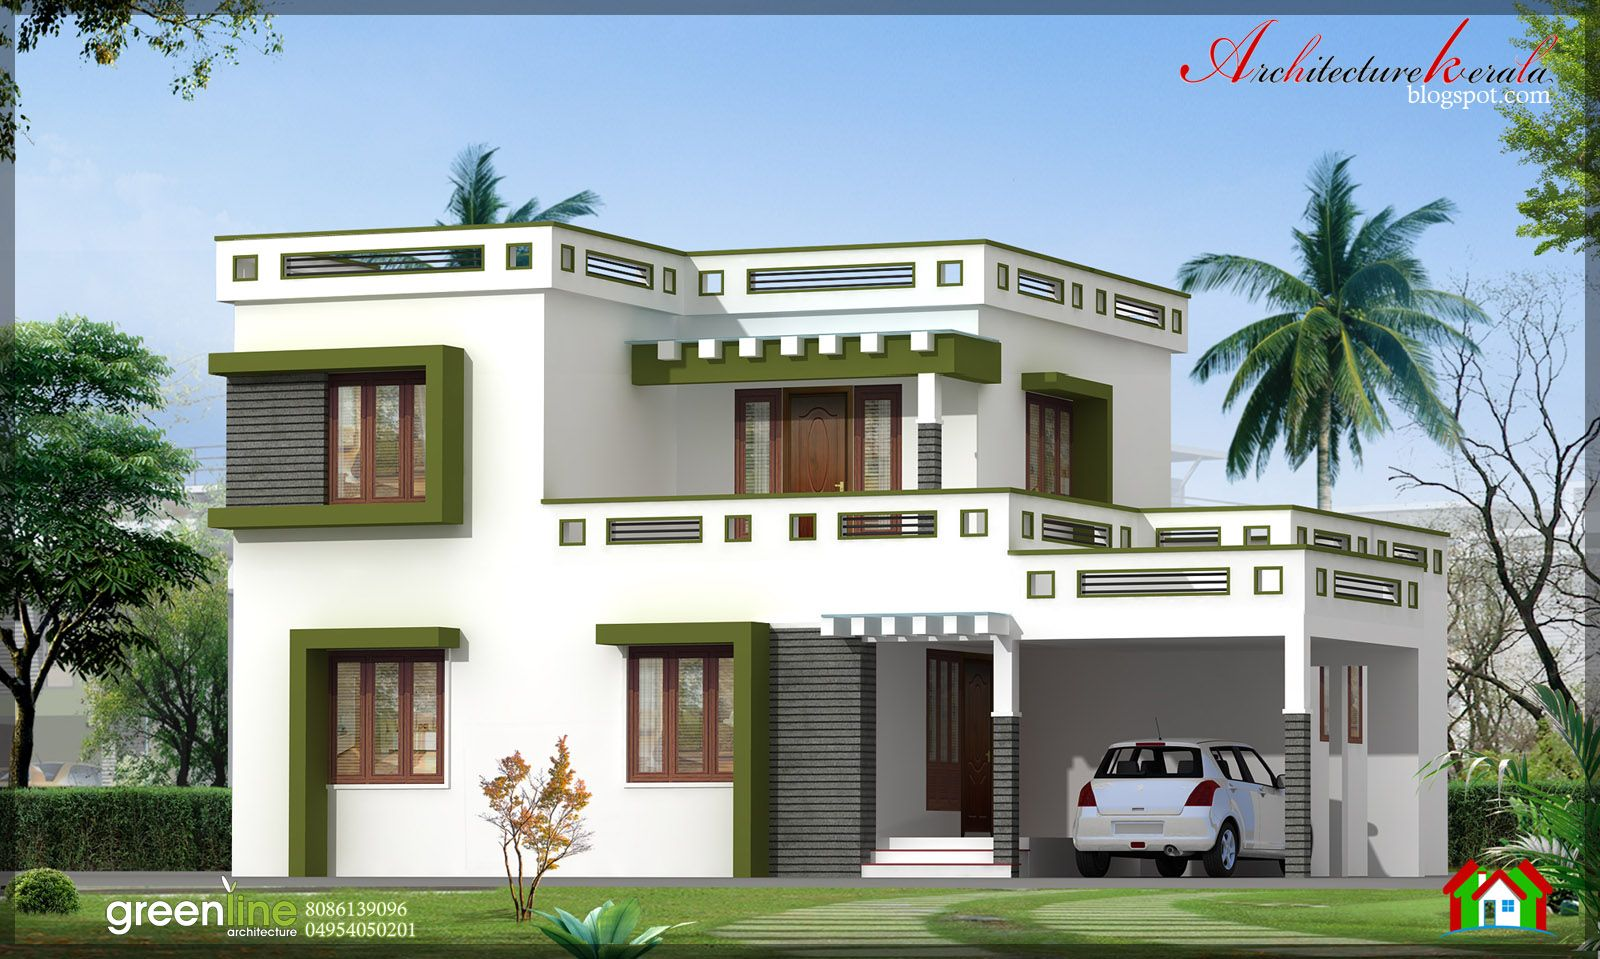 captivating house floor plans line ideas best house plans online kerala house plan photos and its elevations, contemporary style elevation,  traditional kerala style home plans and elevations